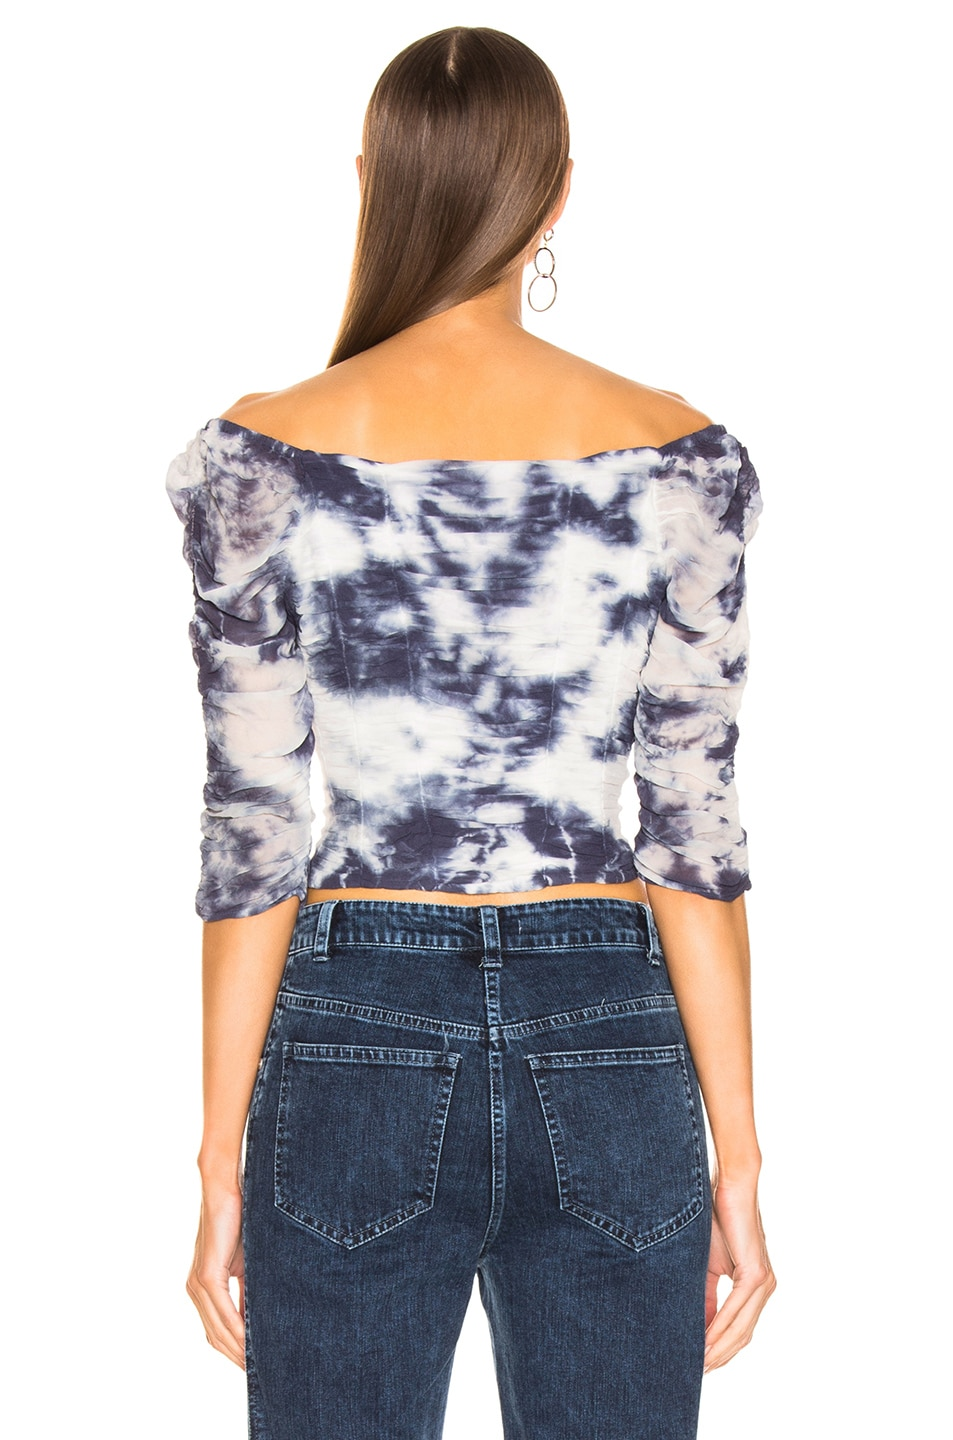 Image 3 of Miaou Madeline Top in Indigo Tie Dye